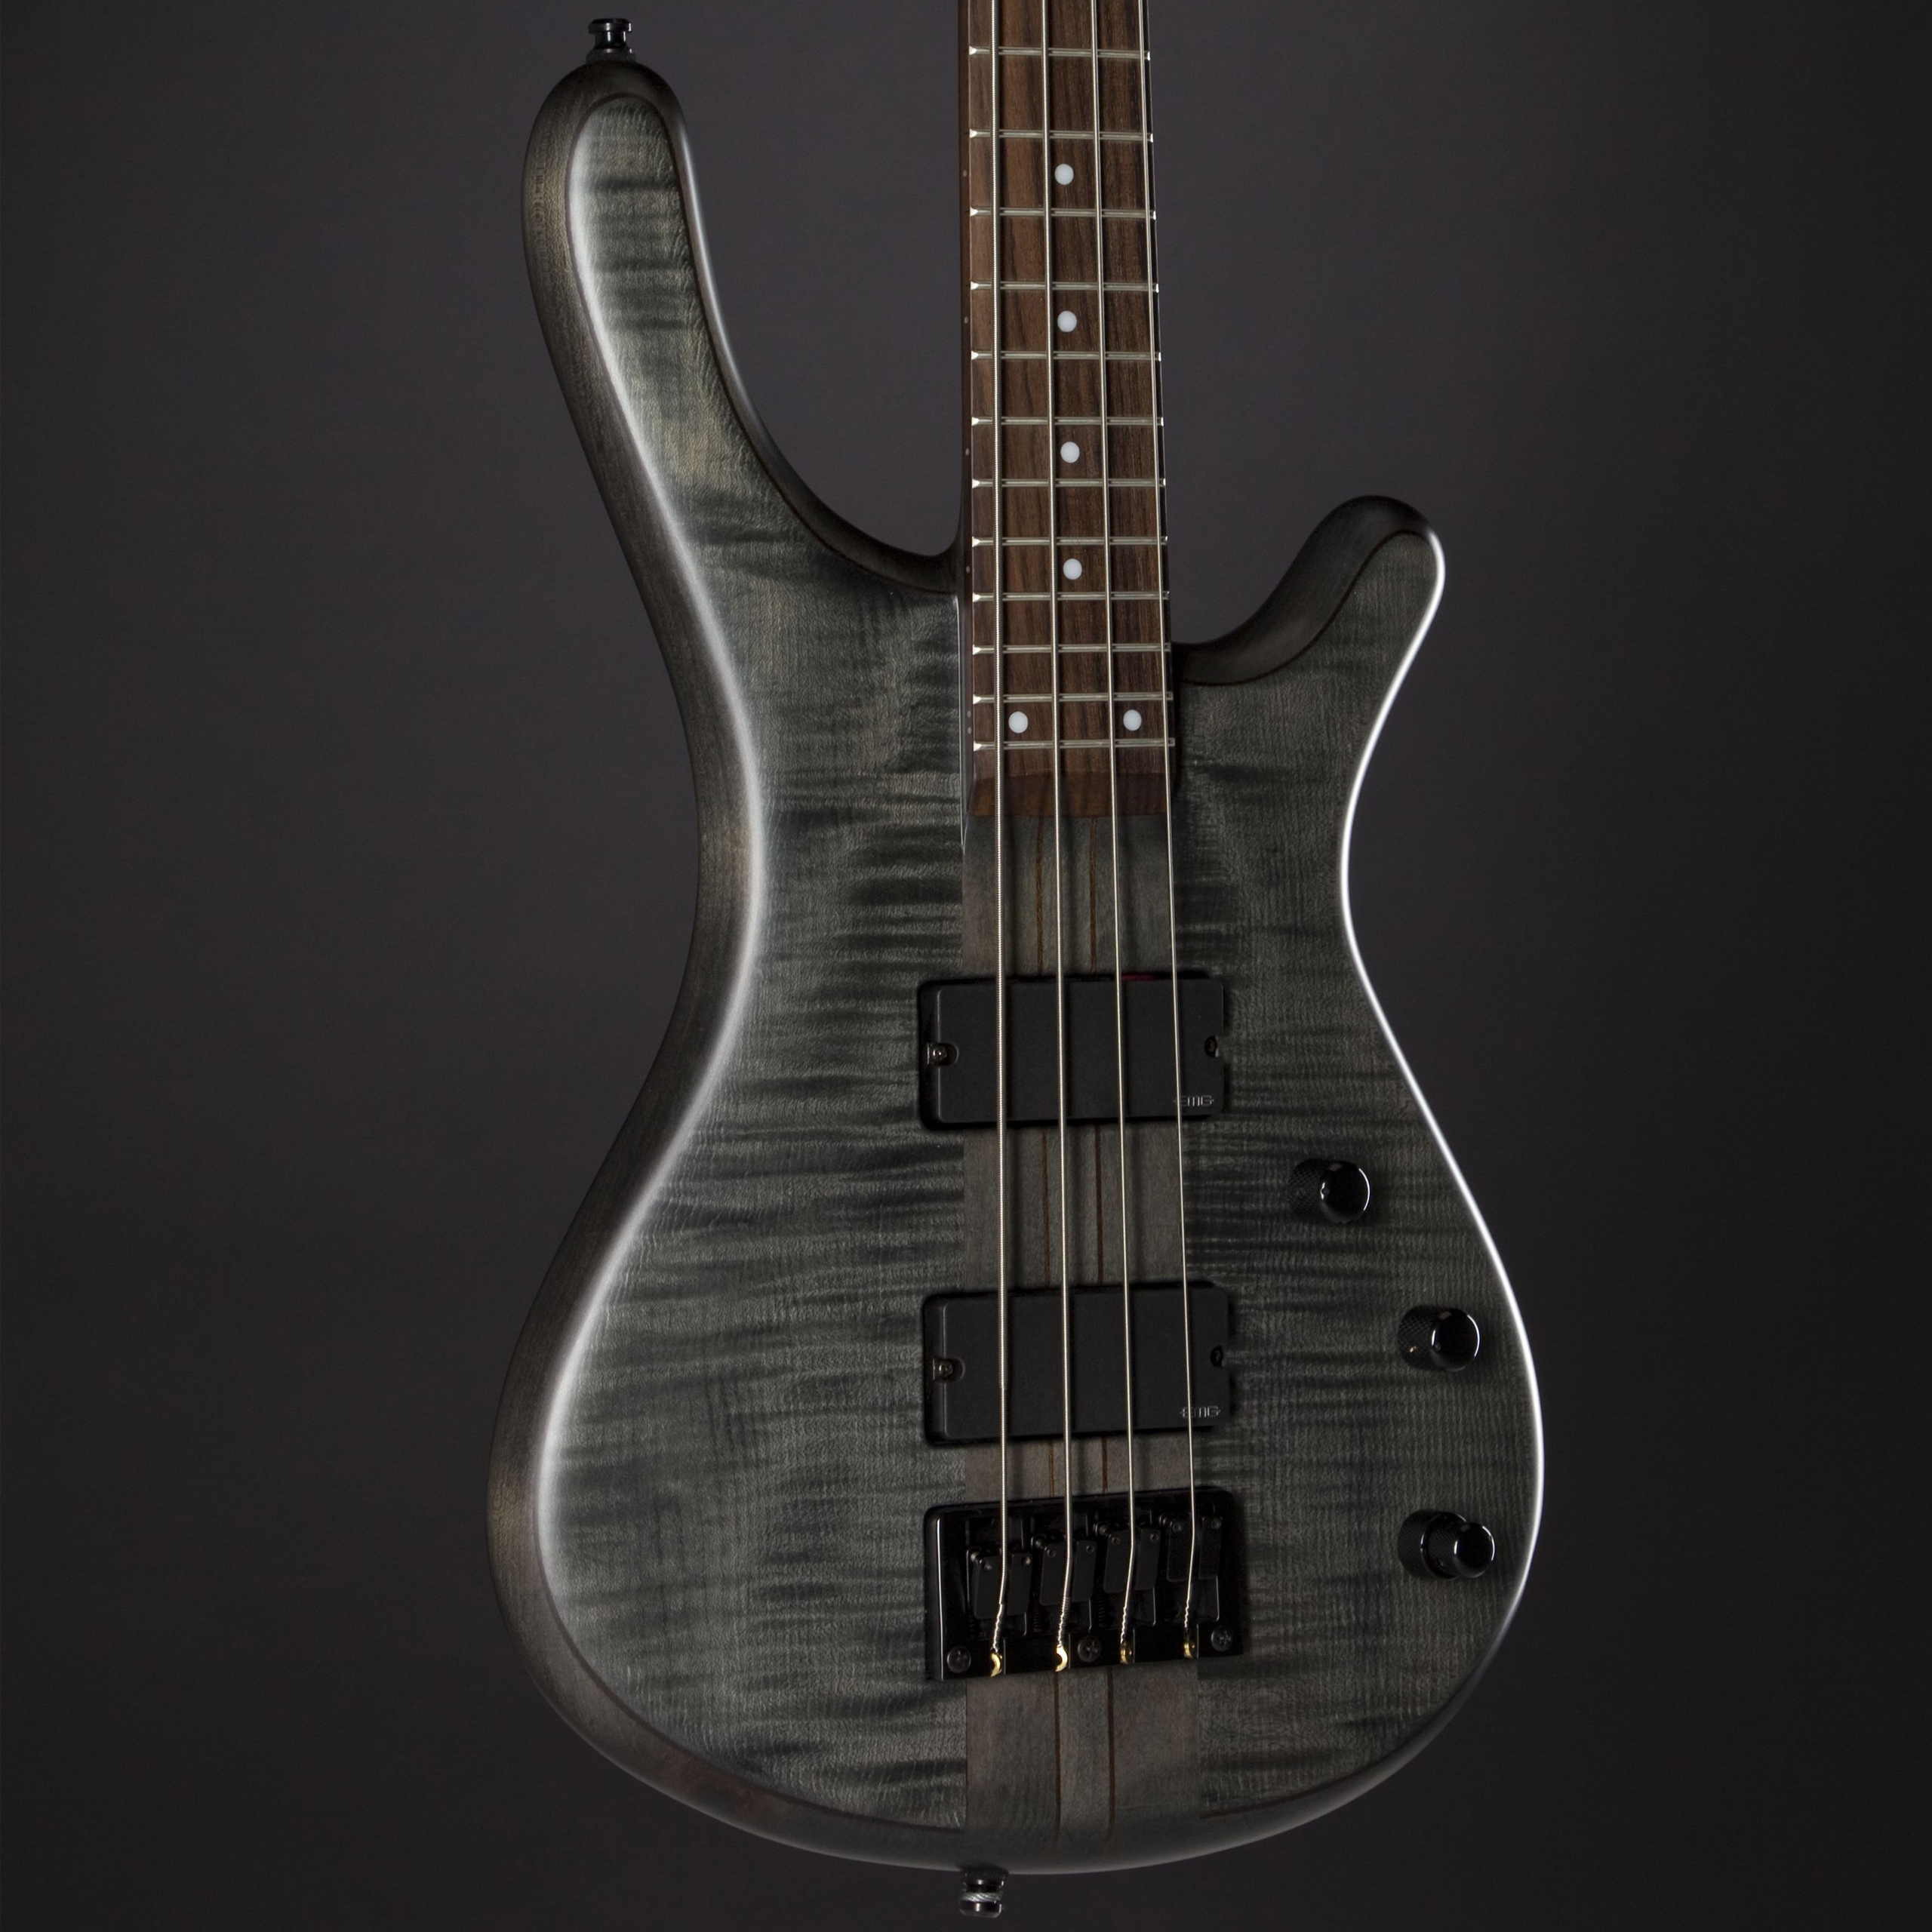 FAME Baphomet NTB 4 LE Graphite Satin Limited Edition Korpus